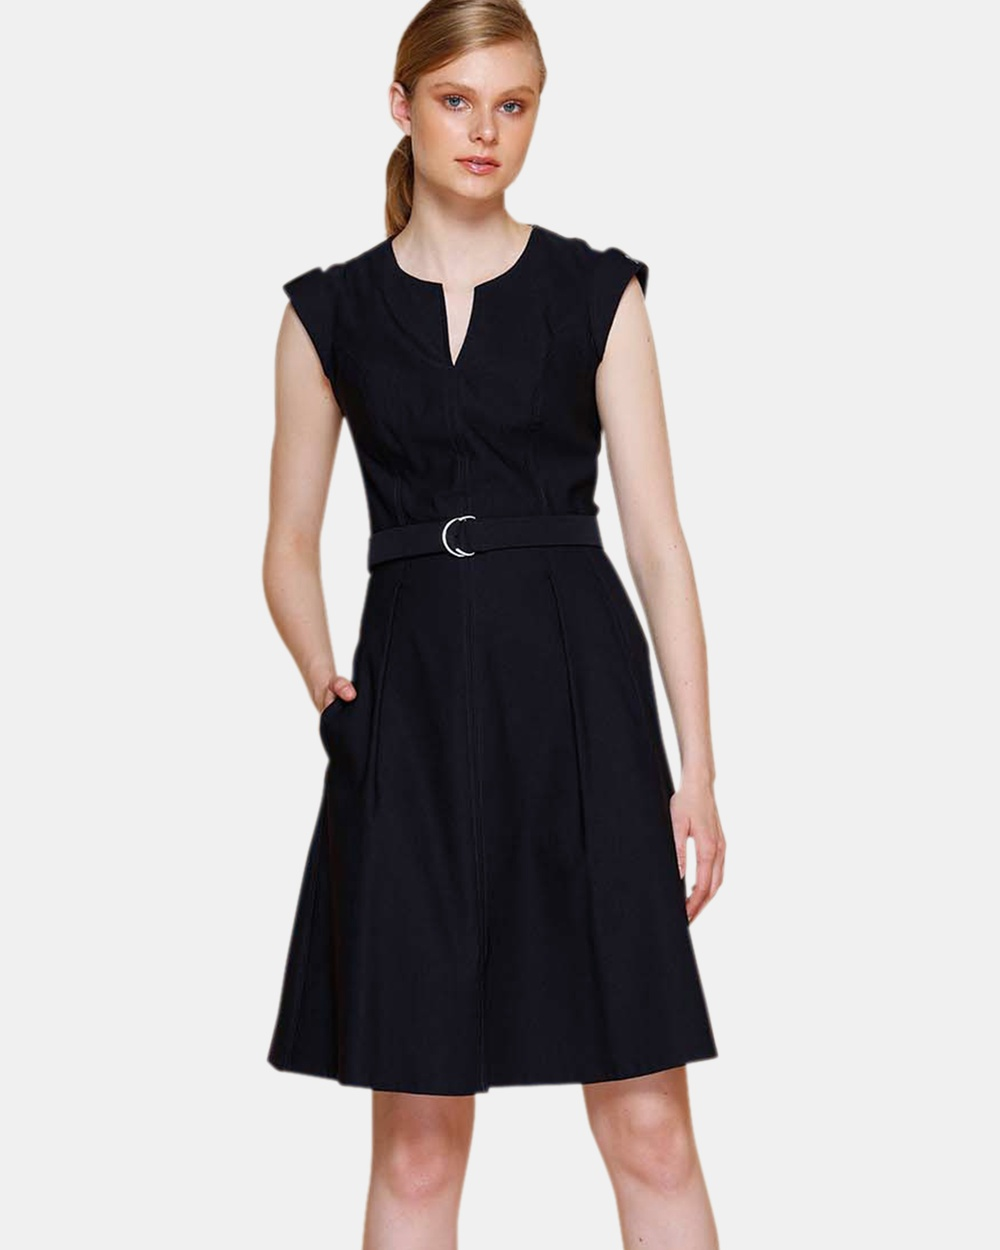 SACHA DRAKE Navy Fit and Flare Dress